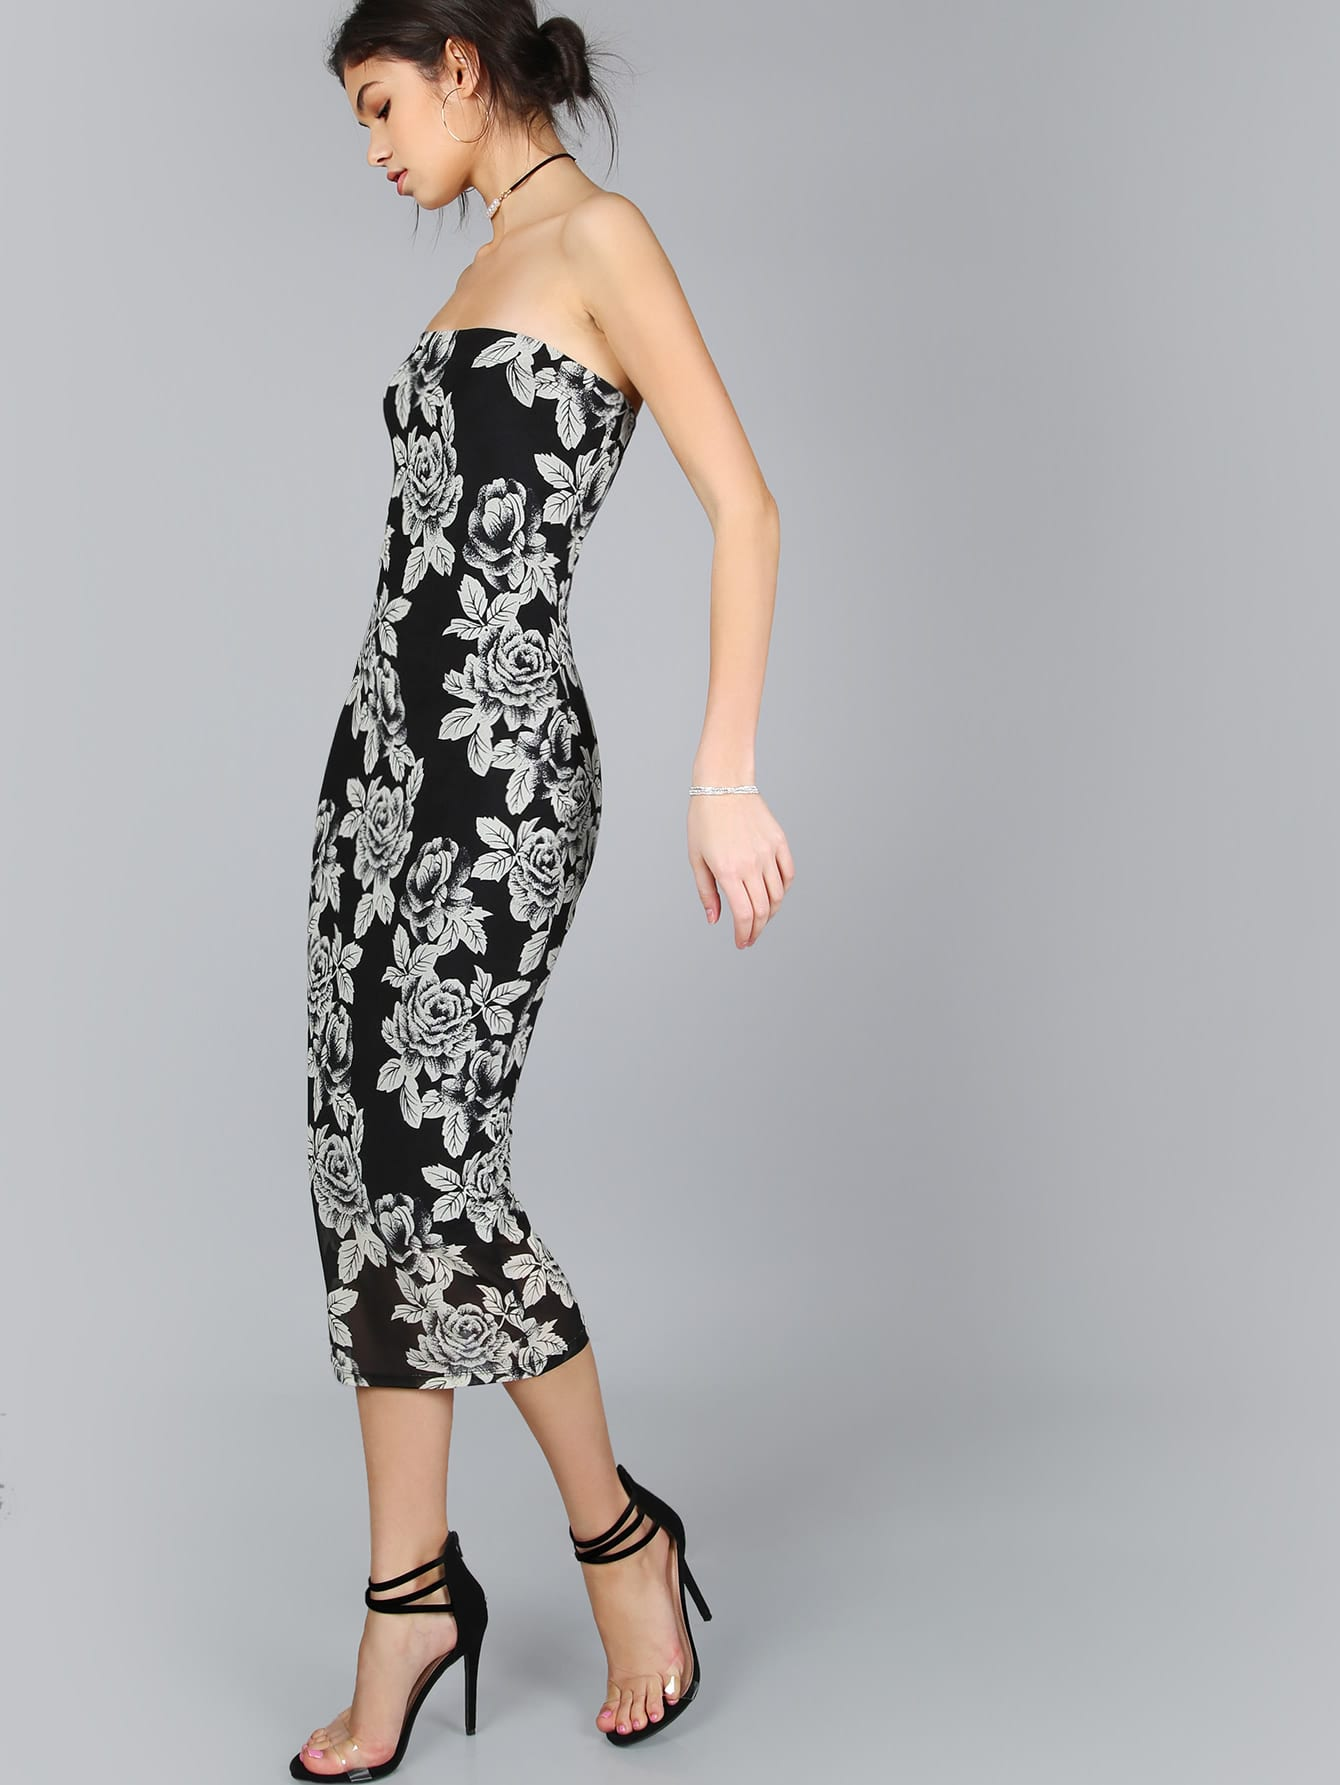 http://it.shein.com/Black-Flower-Print-Bandeau-Midi-Dress-p-340986-cat-1727.html